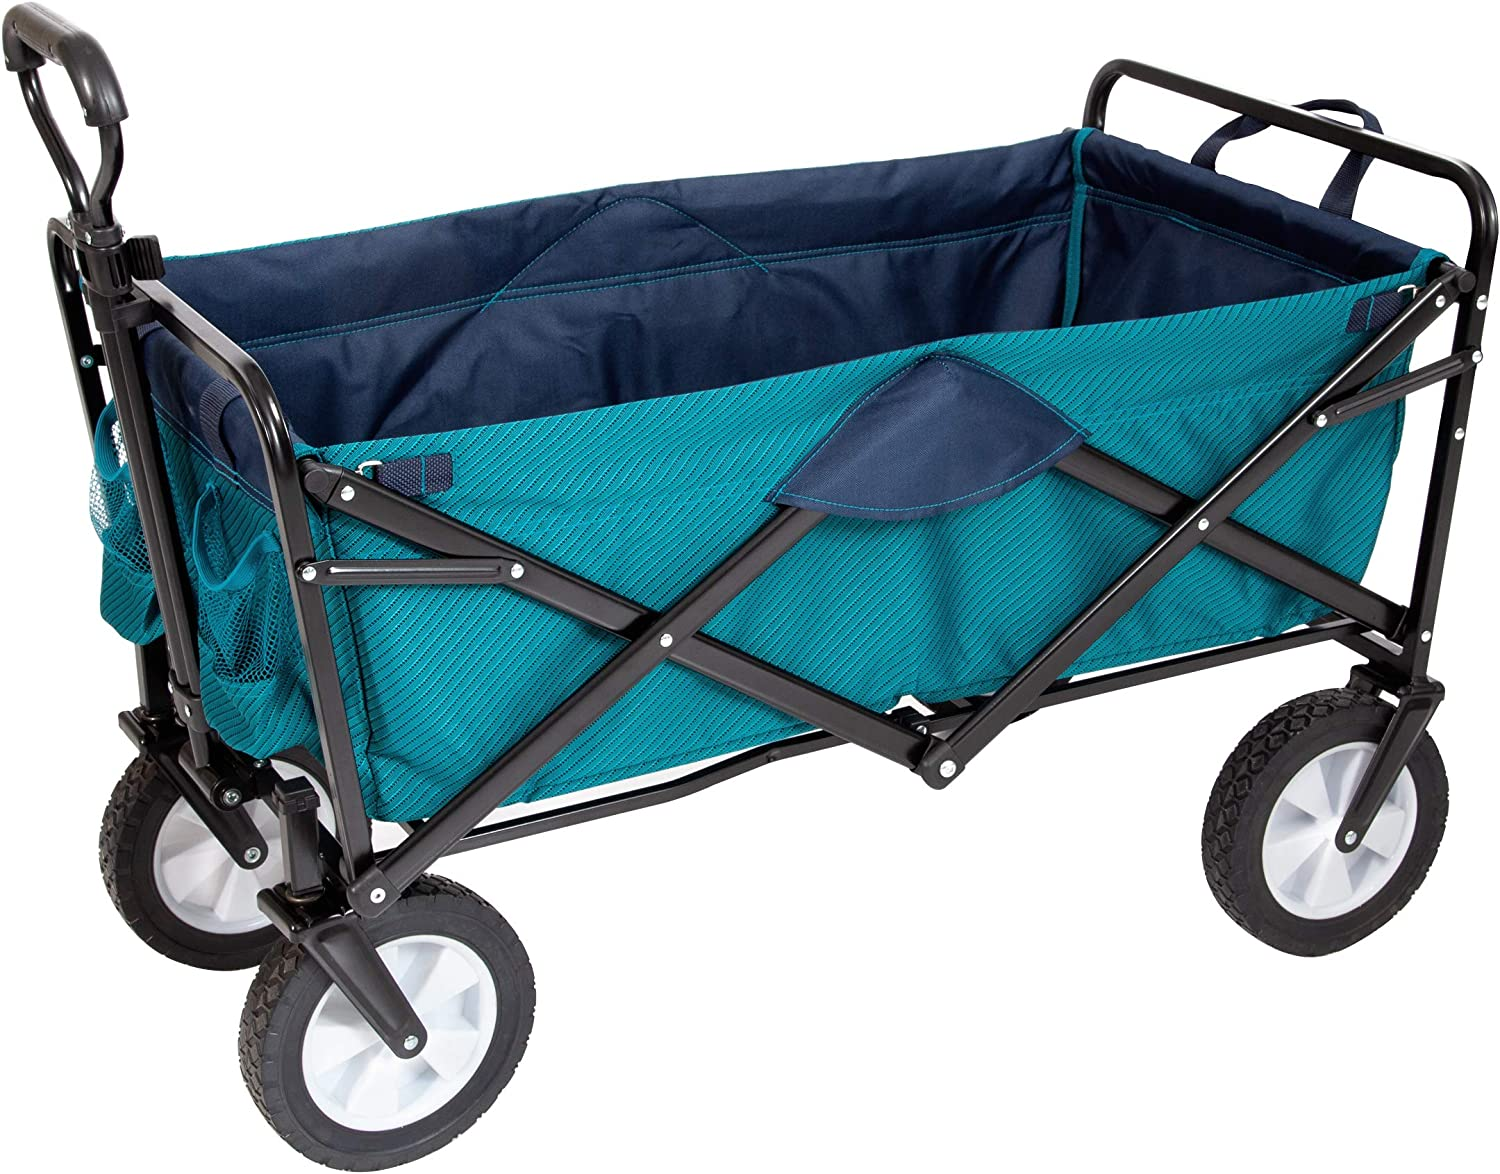 Mac Sports Collapsible Folding Outdoor Utility Wagon, Teal – Limited Edition Color